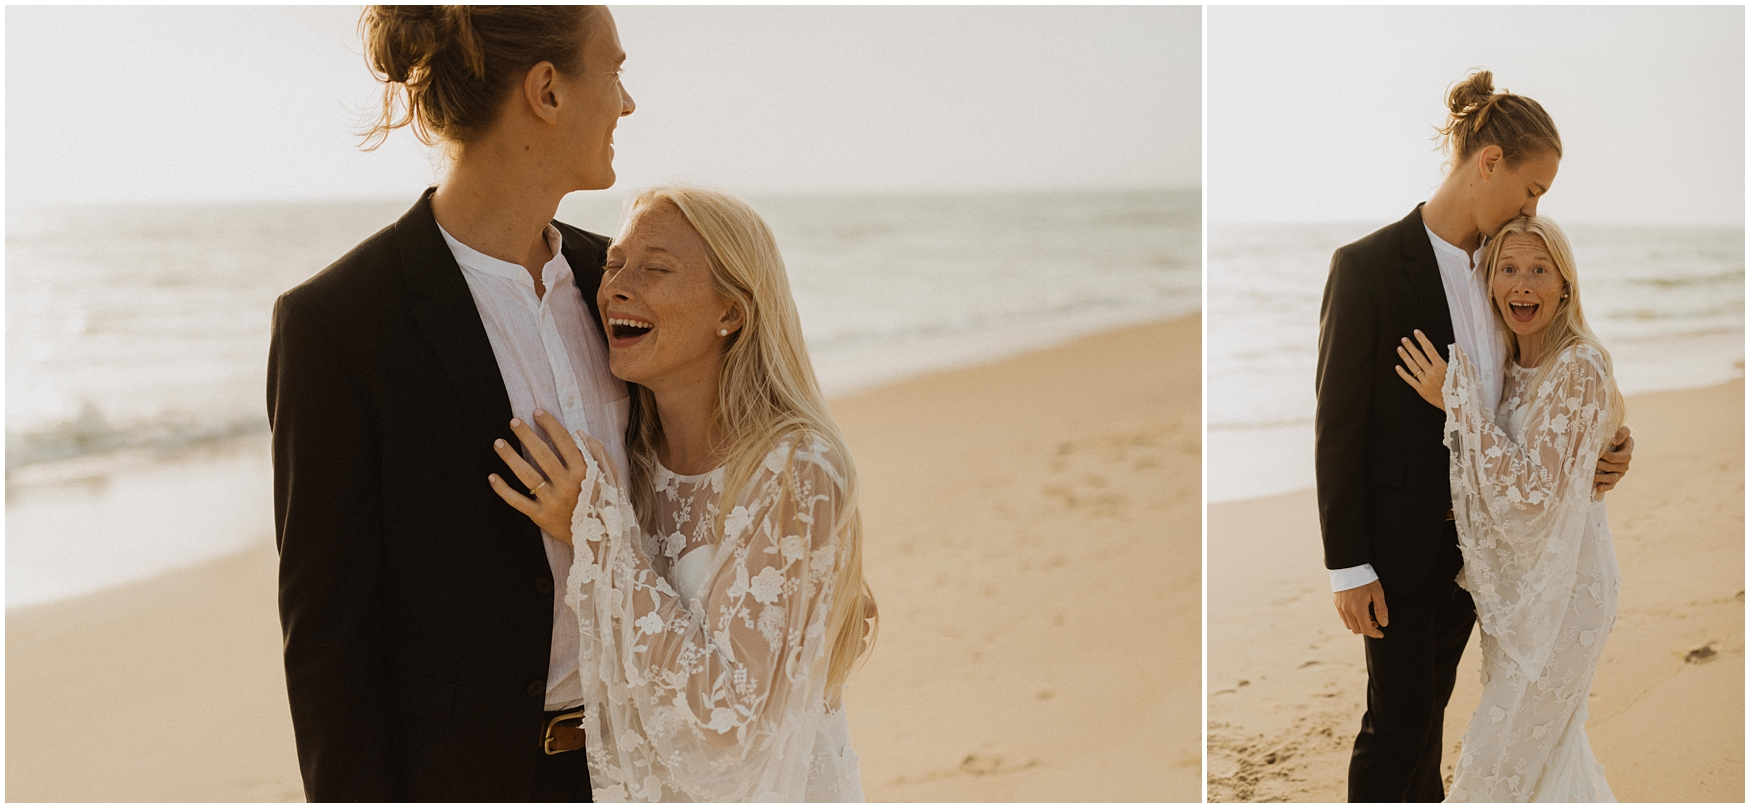 Hannah_Baldwin_Photography_Virginia_Beach_Elopement_Sunrise_0184.jpg